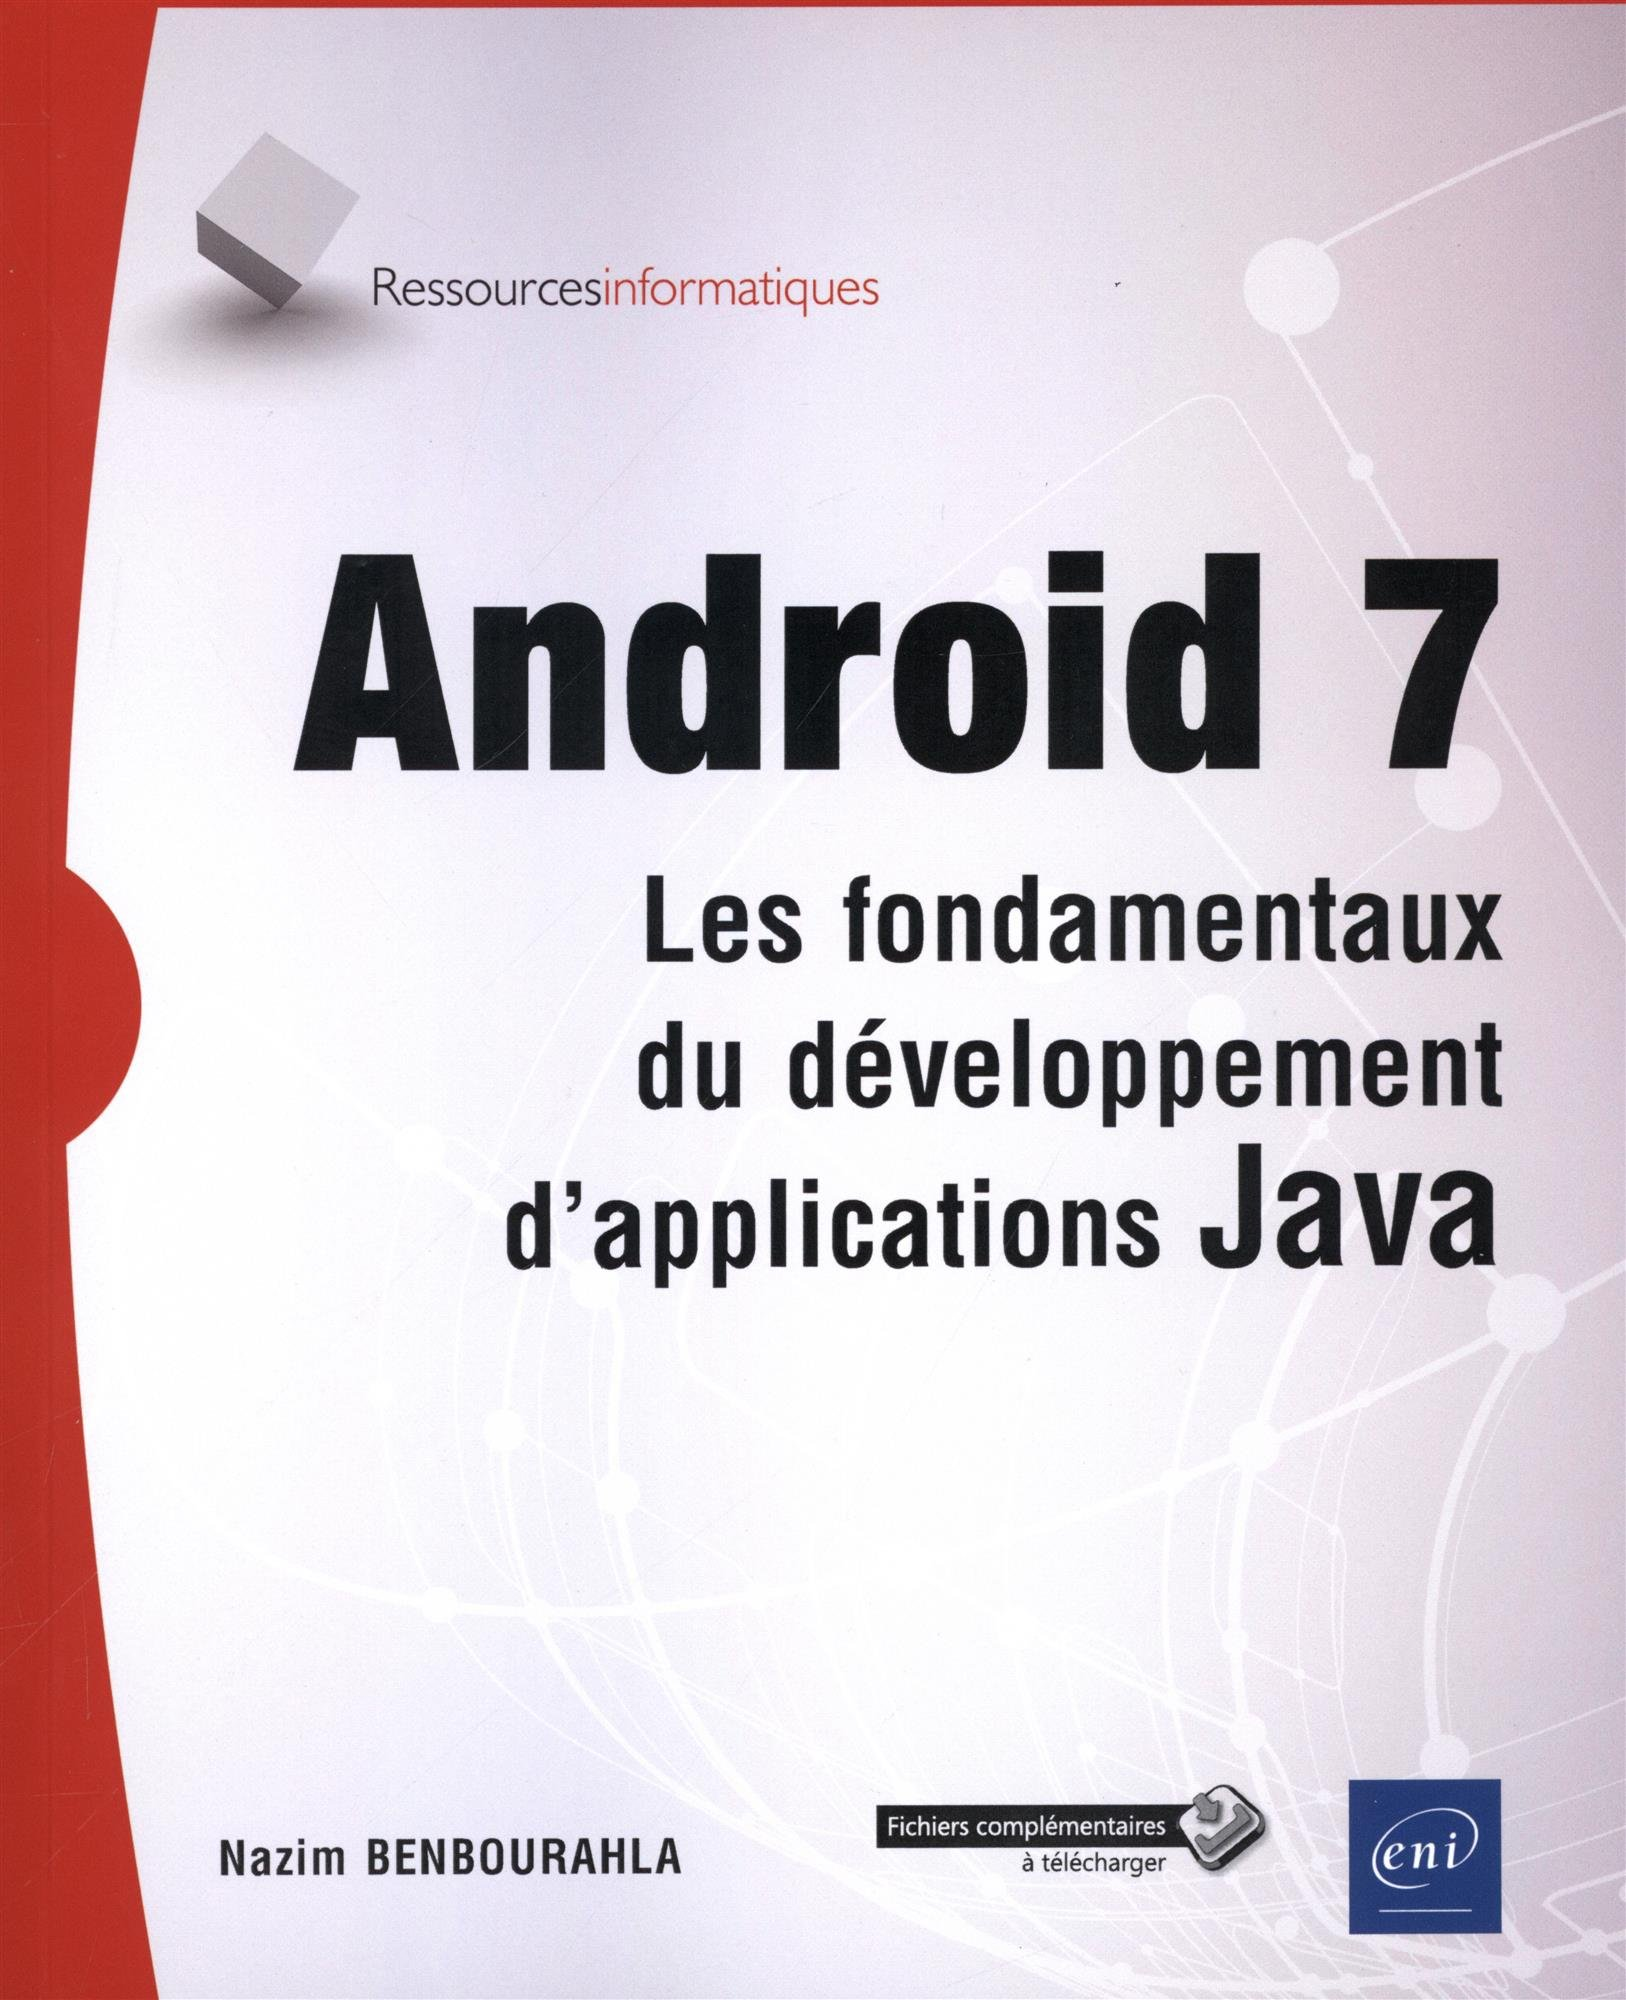 telecharger les applications java